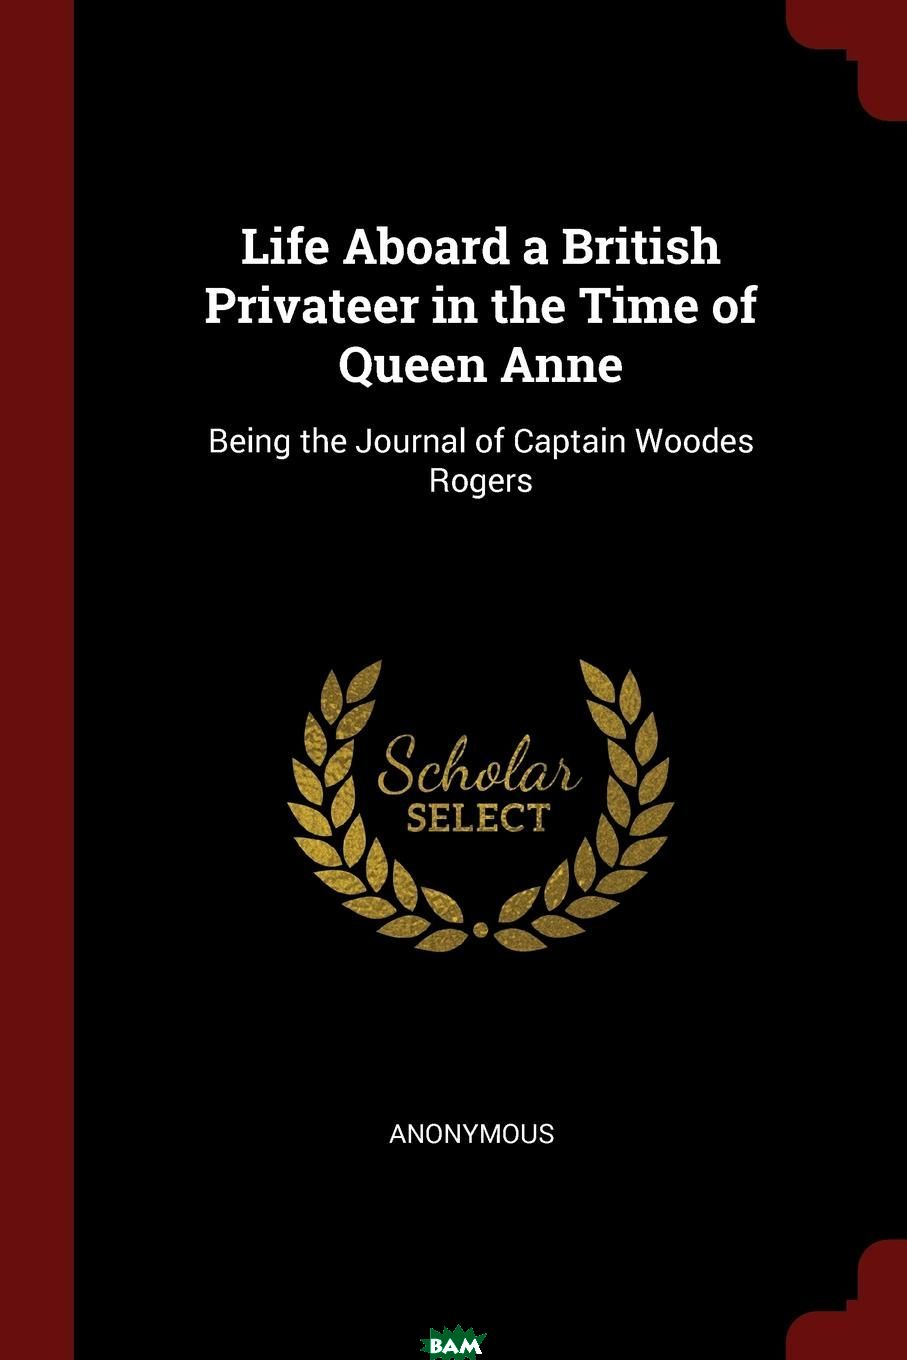 Life Aboard a British Privateer in the Time of Queen Anne. Being the Journal of Captain Woodes Rogers